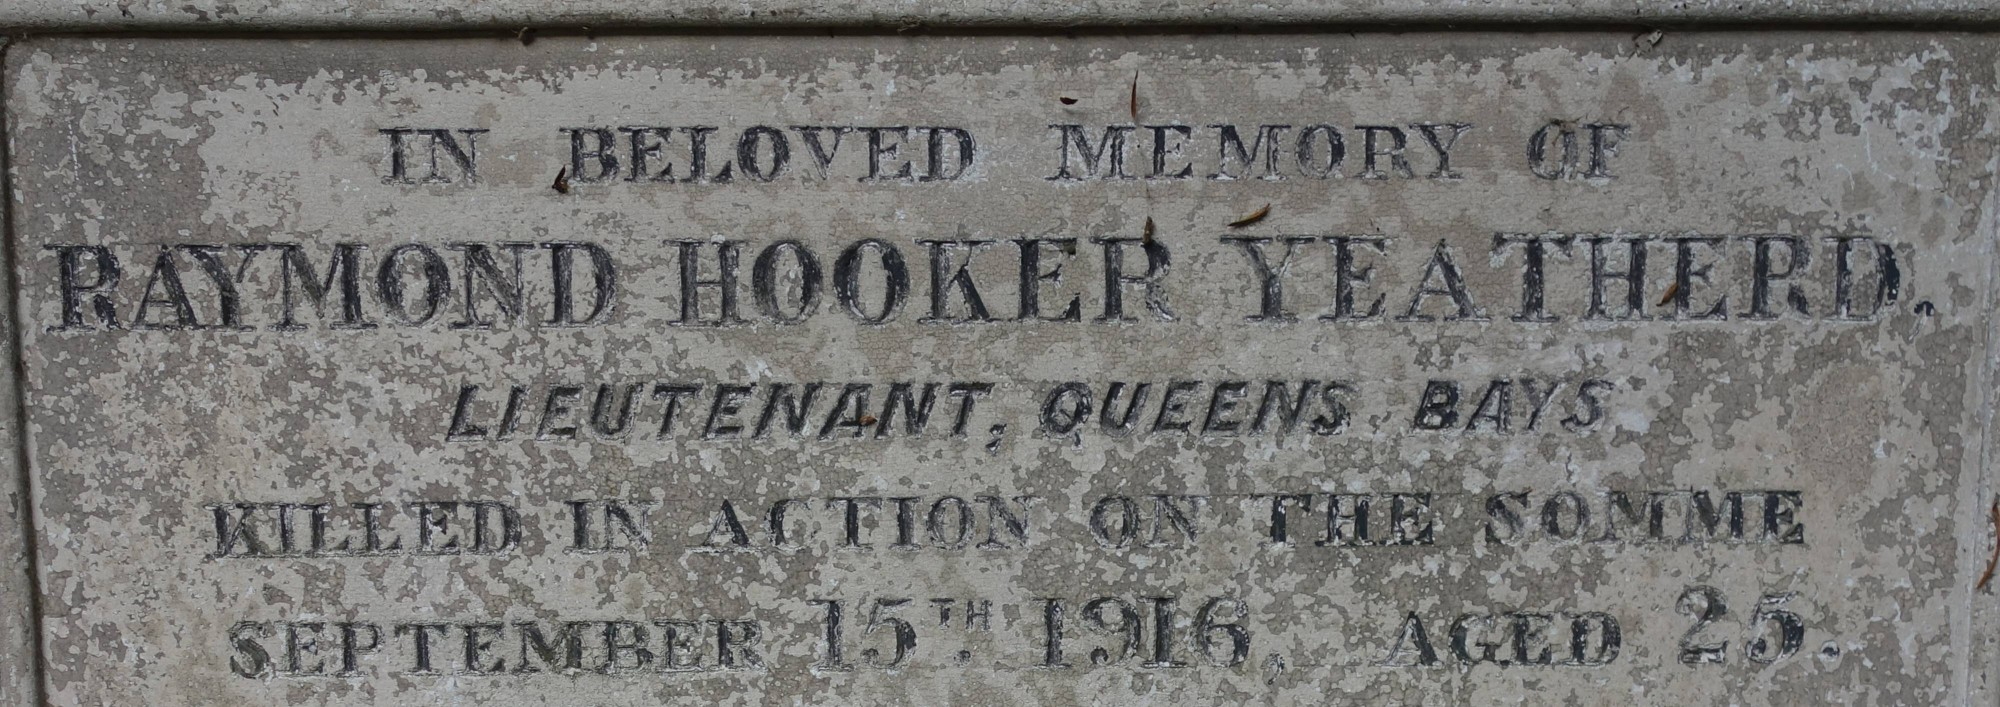 raymond-hooker-yeatherd-2nd-dragoon-guards-queens-bays